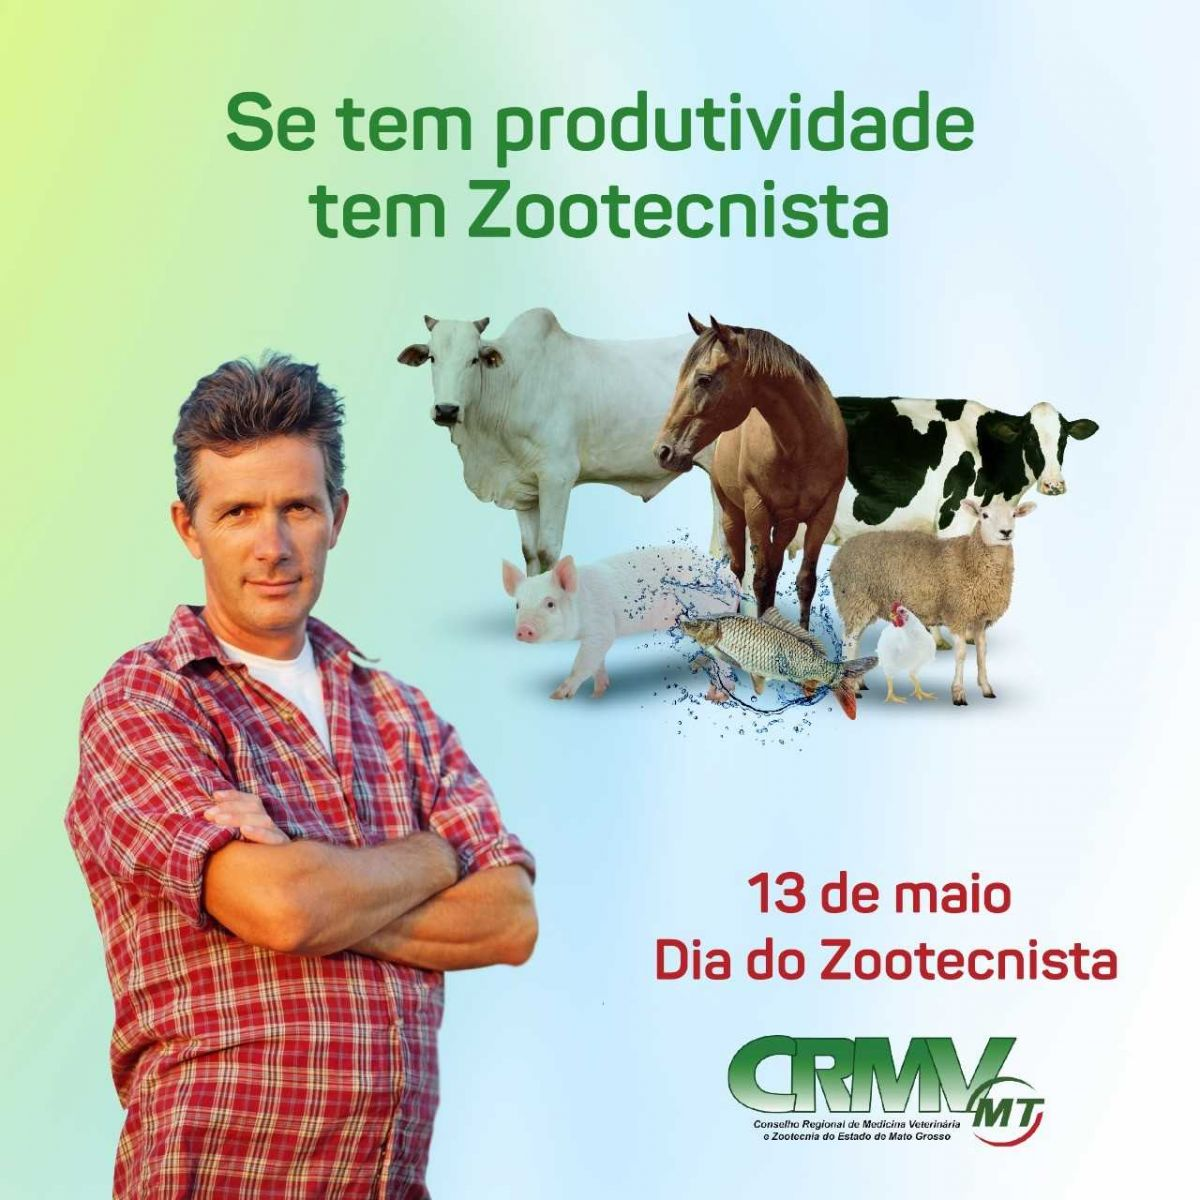 Dia do Zootecnista CRMV-MT